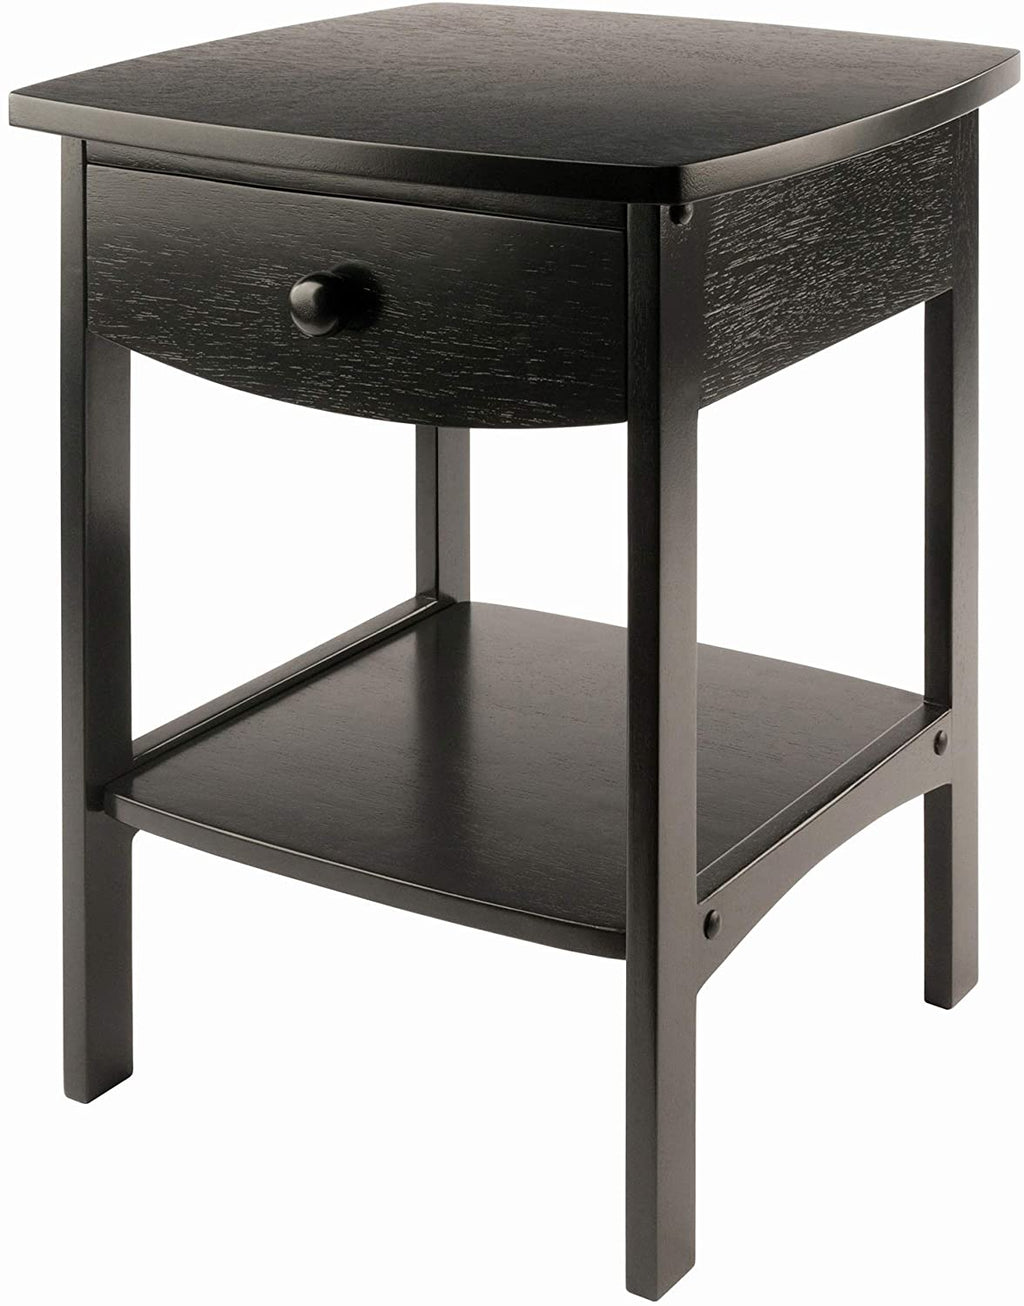 Curved End Night Stand Table, 1 Drawer, Black - Pot Racks Plus